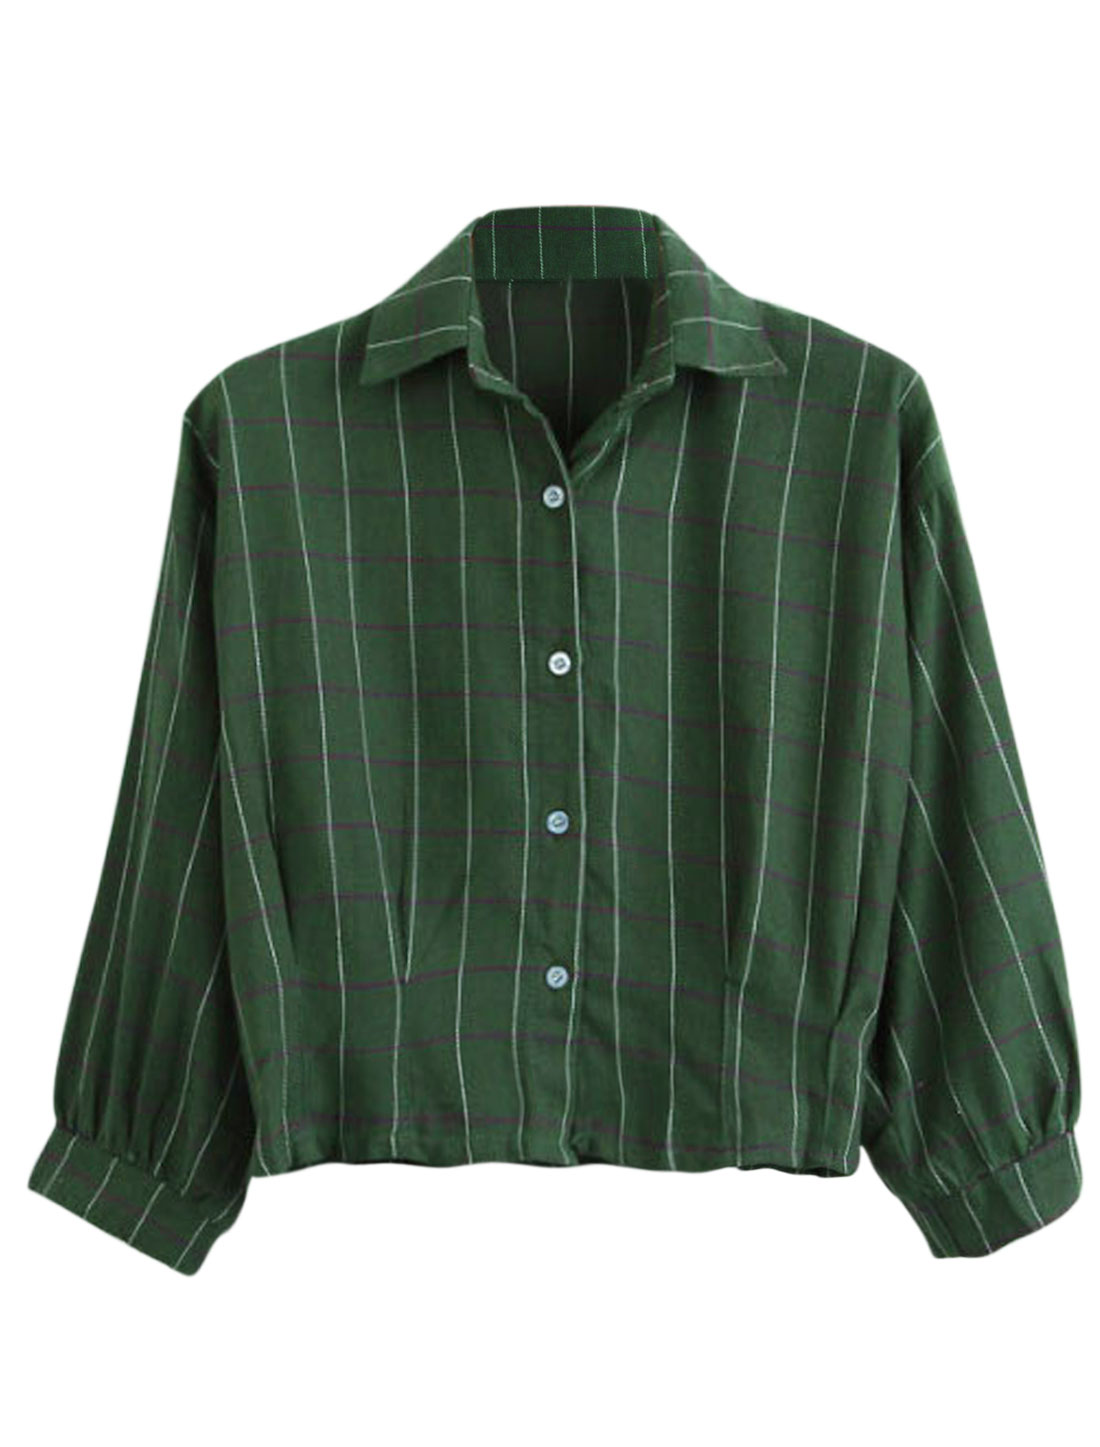 Women Plaids Pattern Single Breasted 3/4 Sleeve Casual Shirt Dark Green S